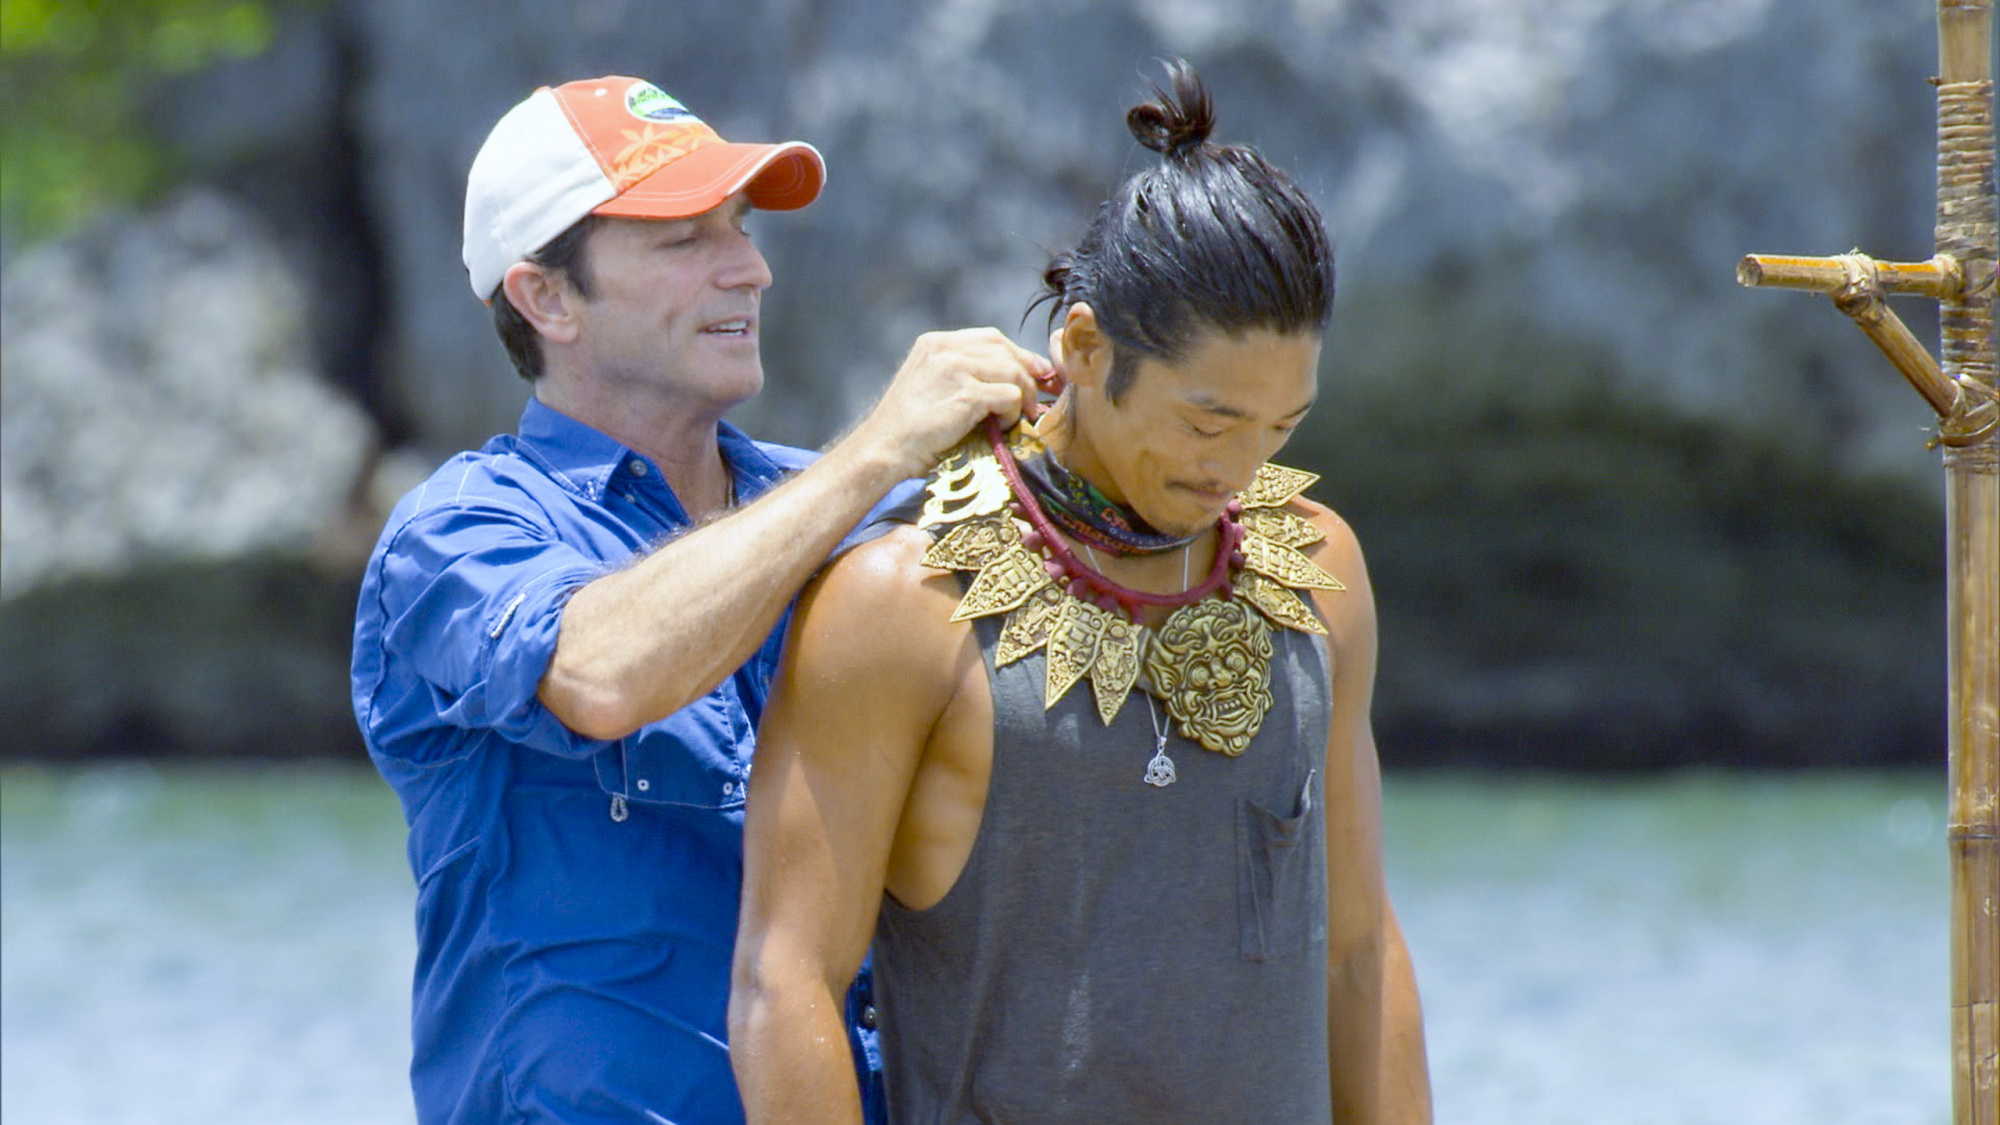 Woo wins immunity in Season 28 Episode 6